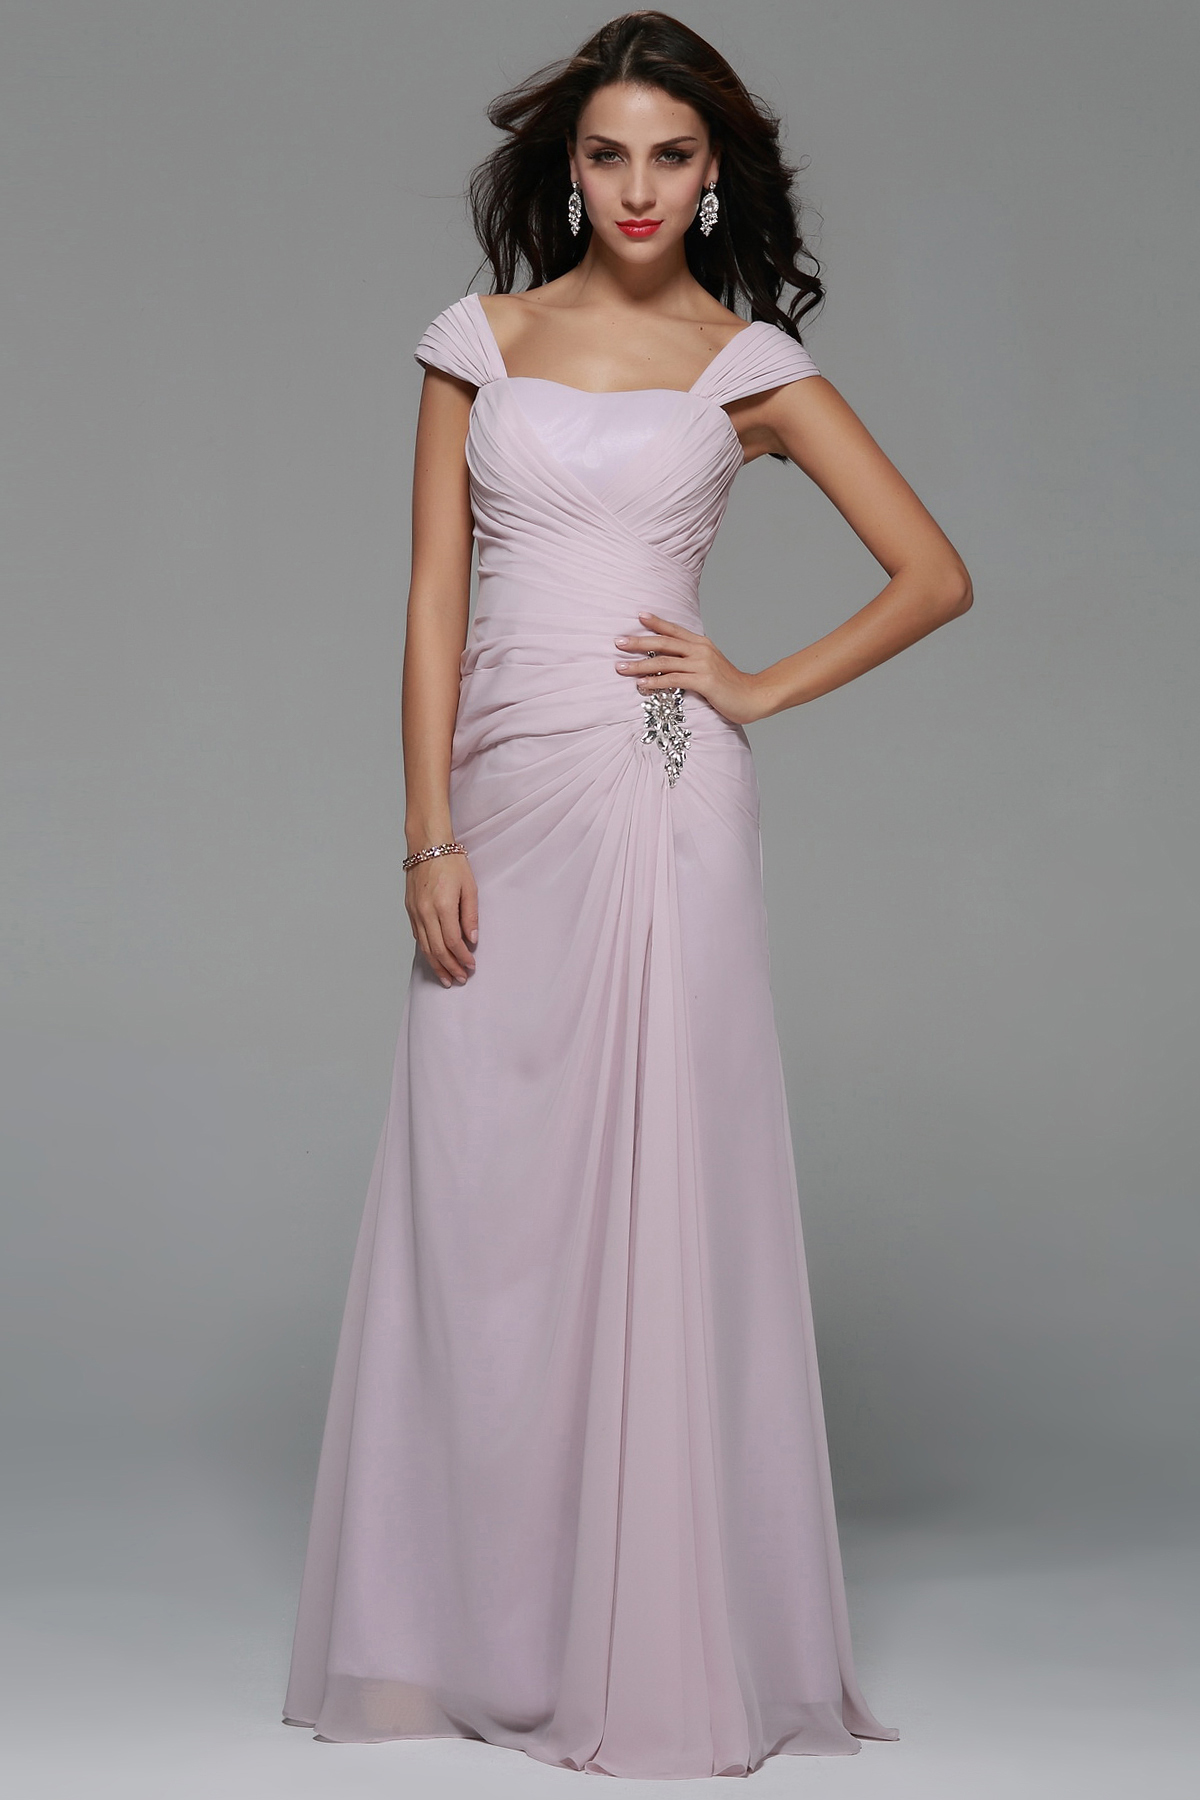 Shoulder Straps Beading A-line Long Pinky Chiffon Prom Dress